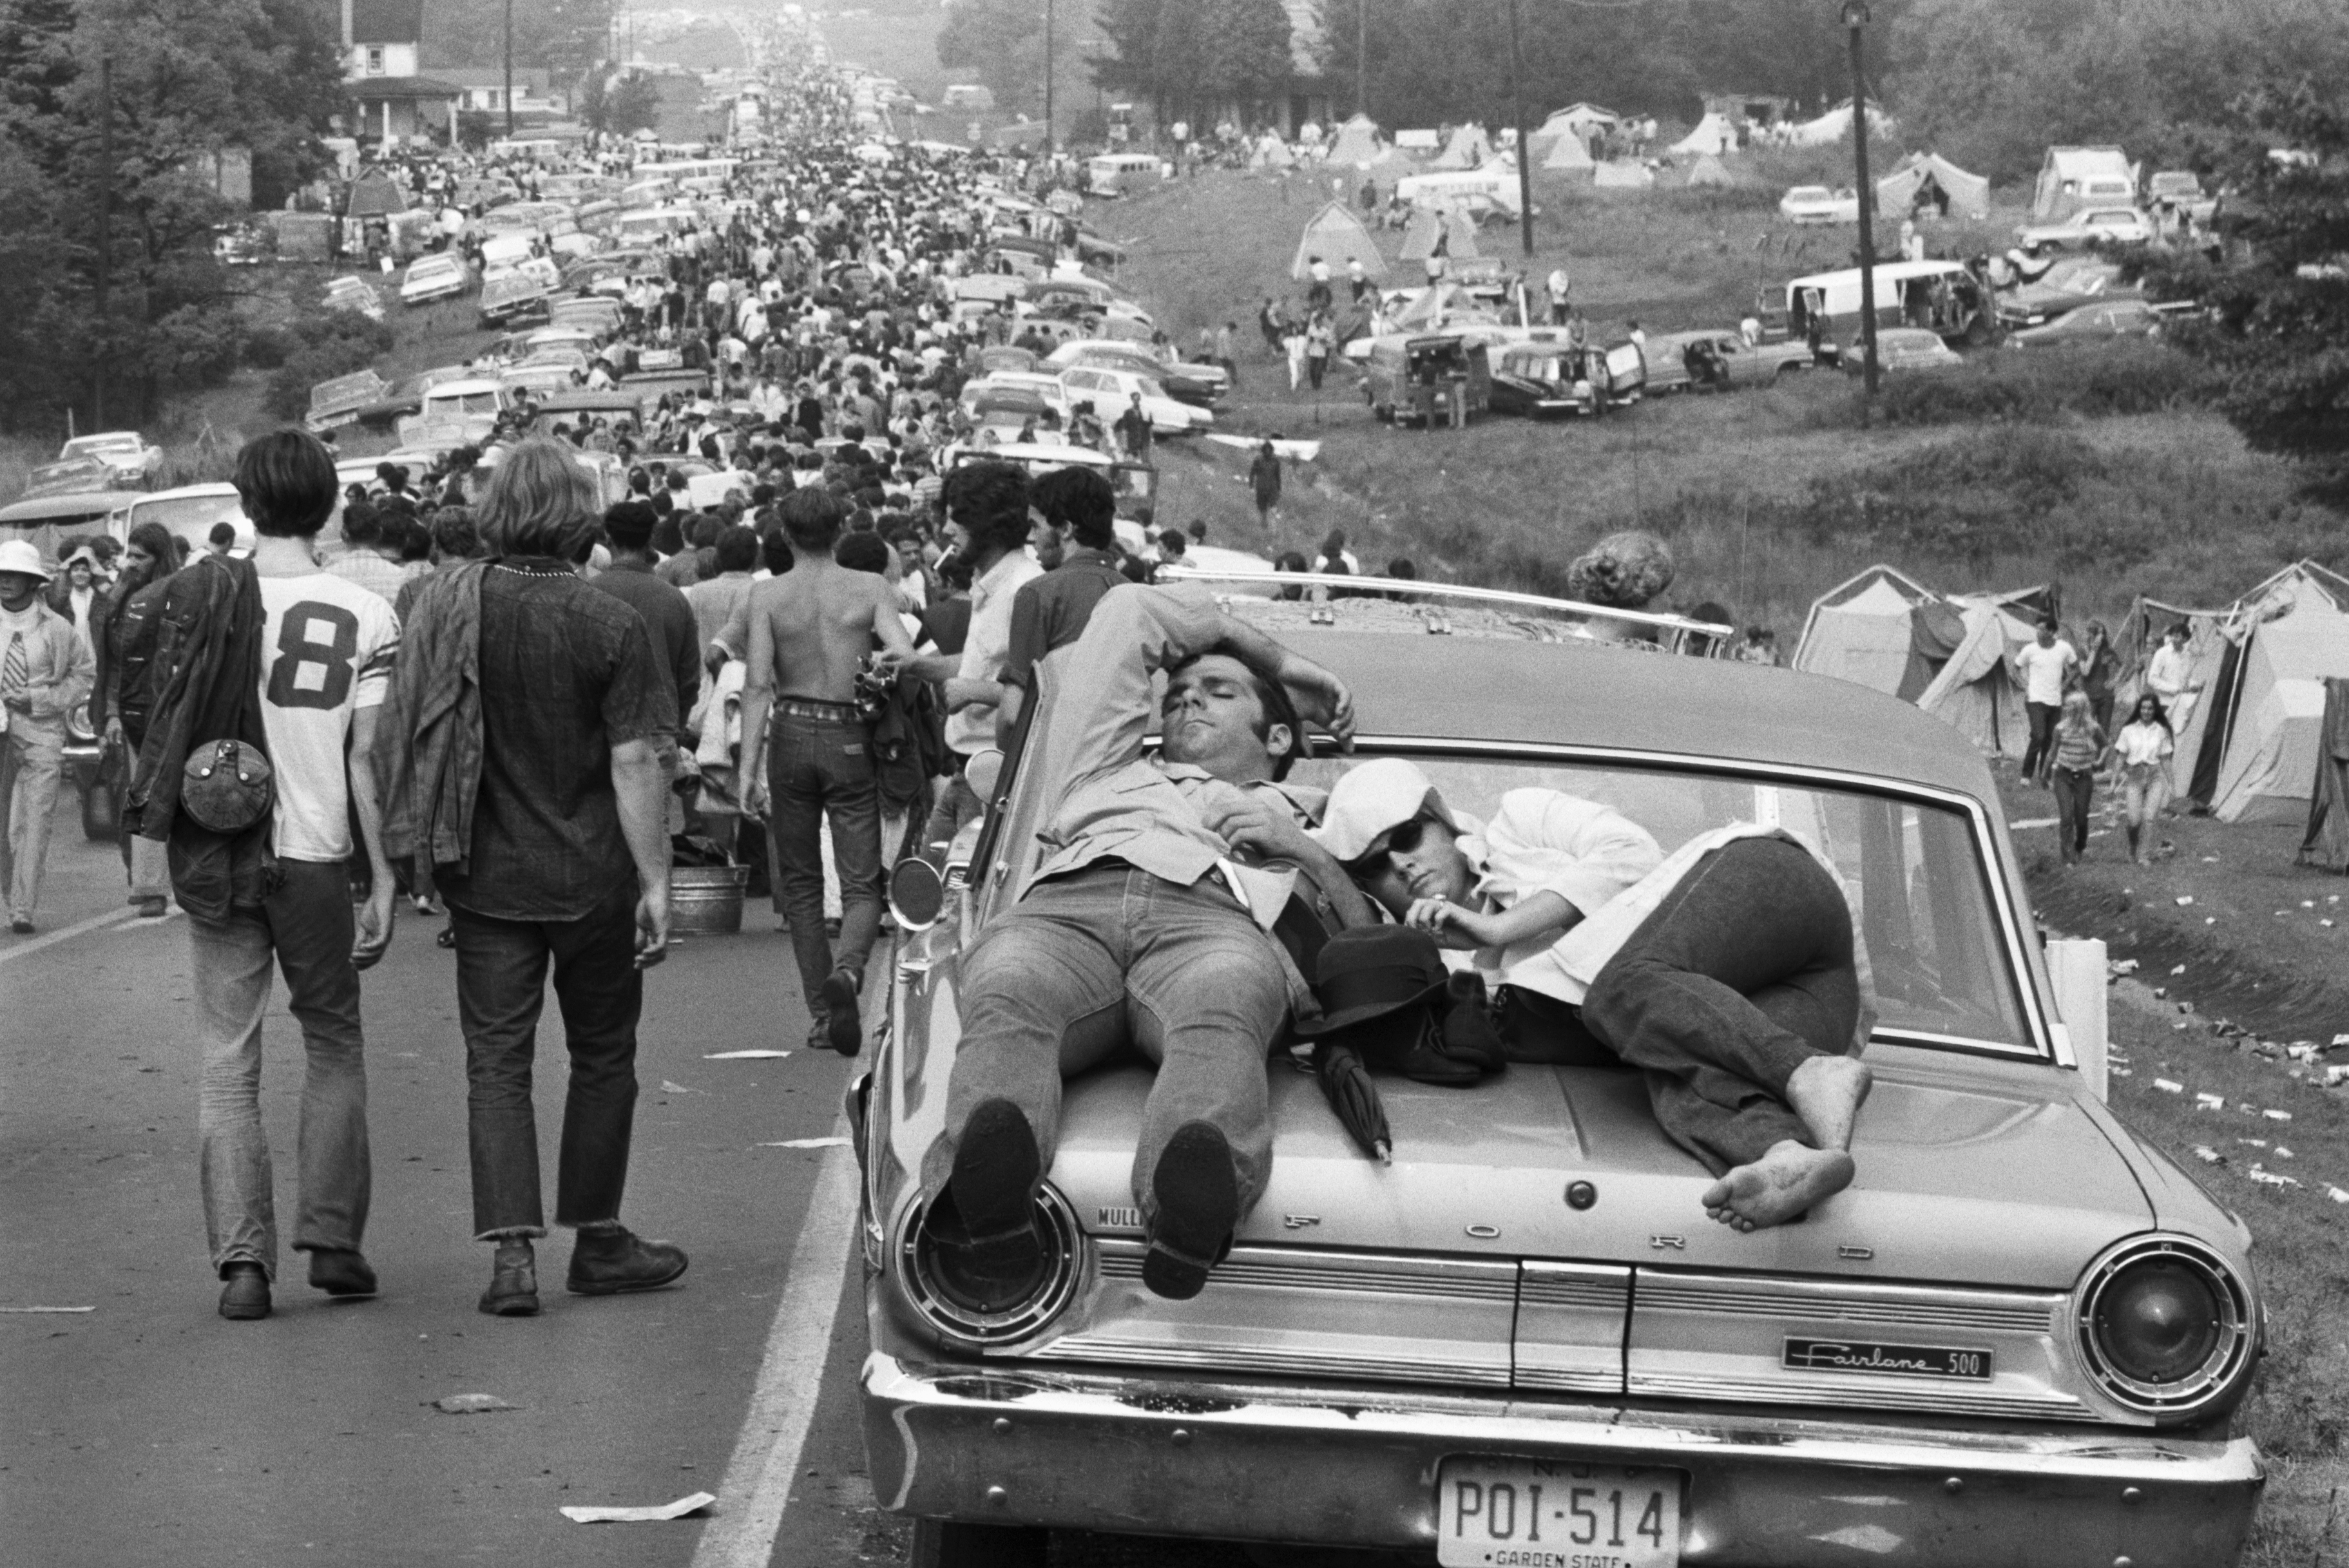 Fifty Years After Woodstock, We Are Caught in the Devil's Bargain